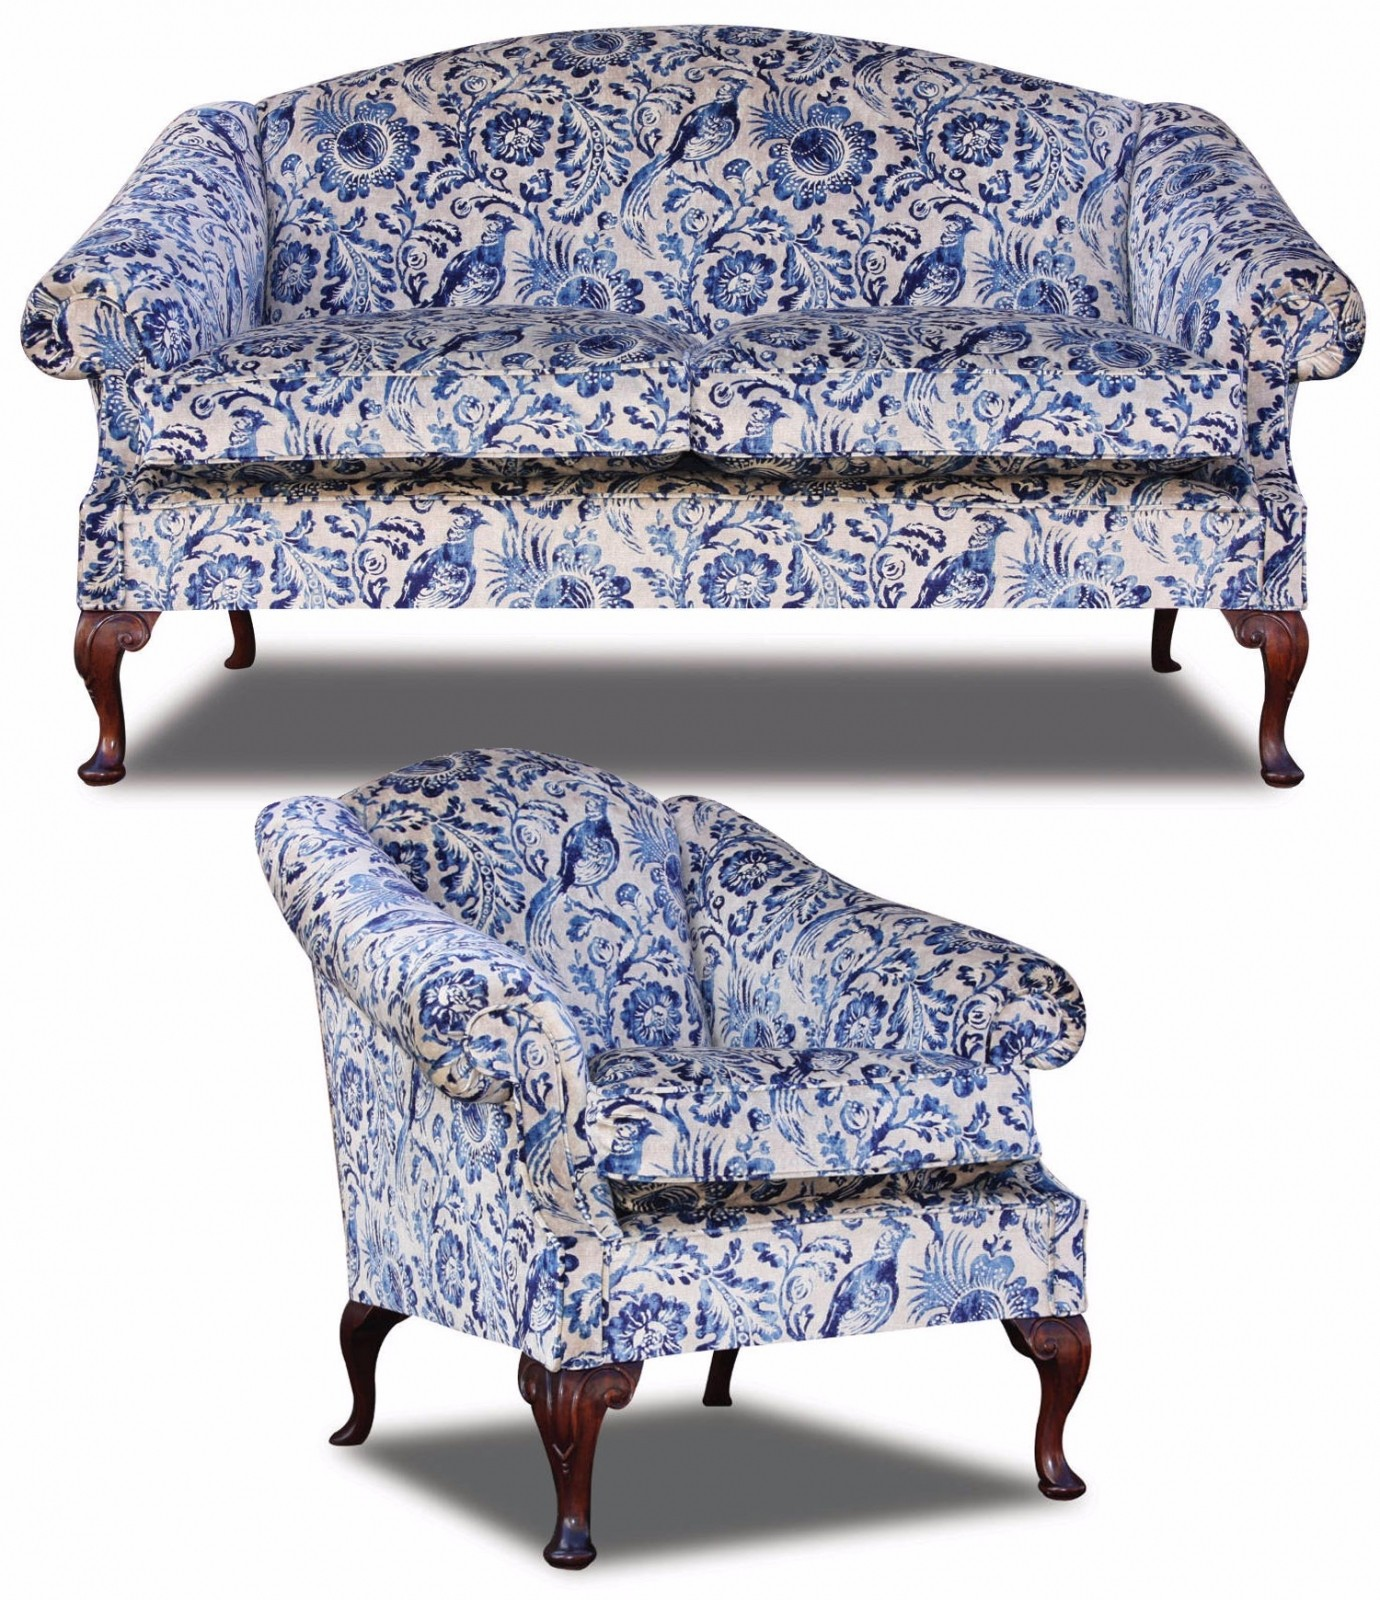 Coleridge Sofa And Chair In Antiqued Velvet Print Fabric